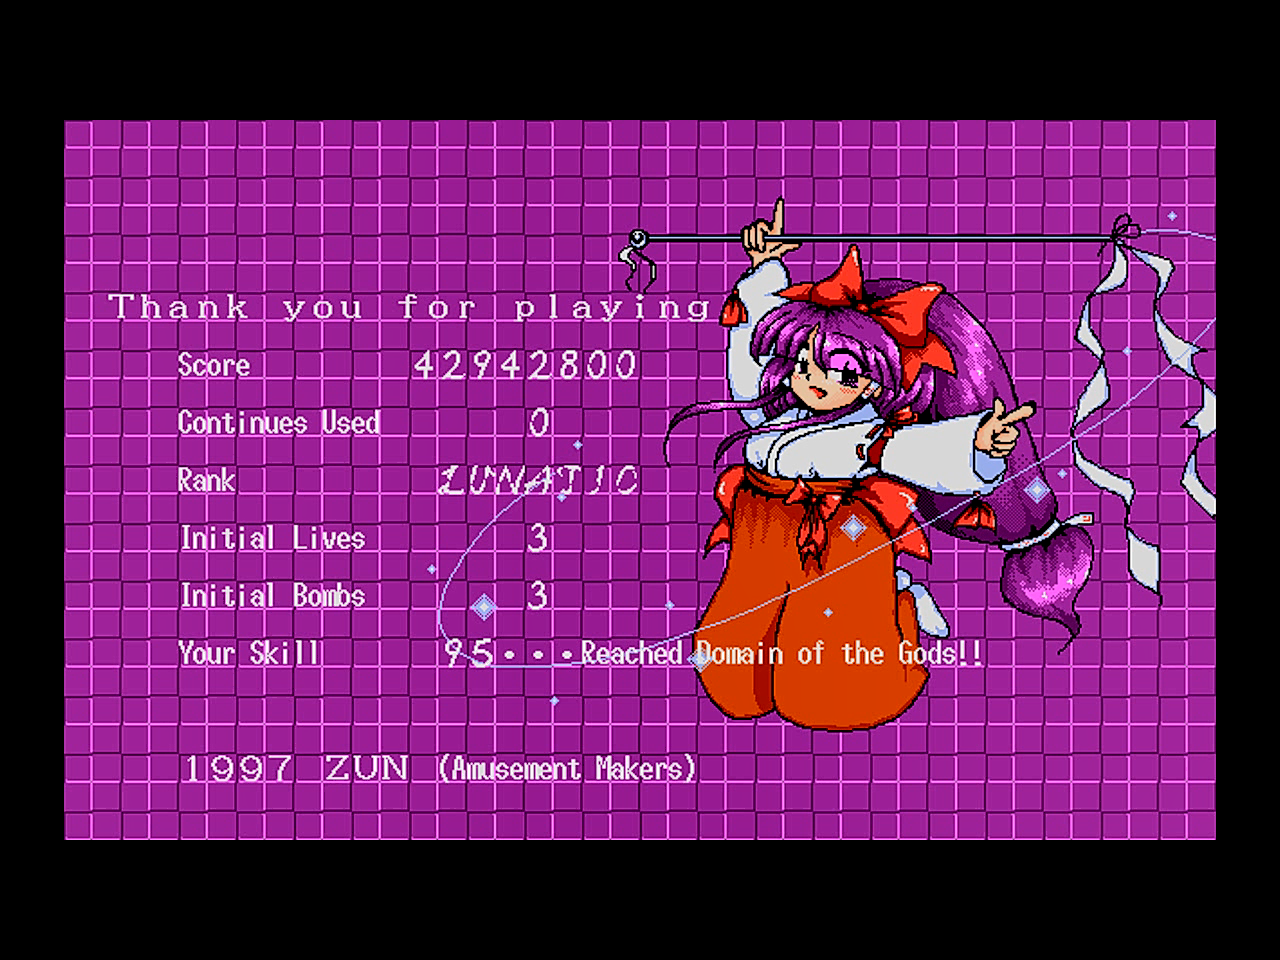 KirbyComment: Touhou 2: Story Of Eastern Wonderland [Lunatic] (NEC PC-98 Emulated) 42,942,800 points on 2019-05-01 05:51:20